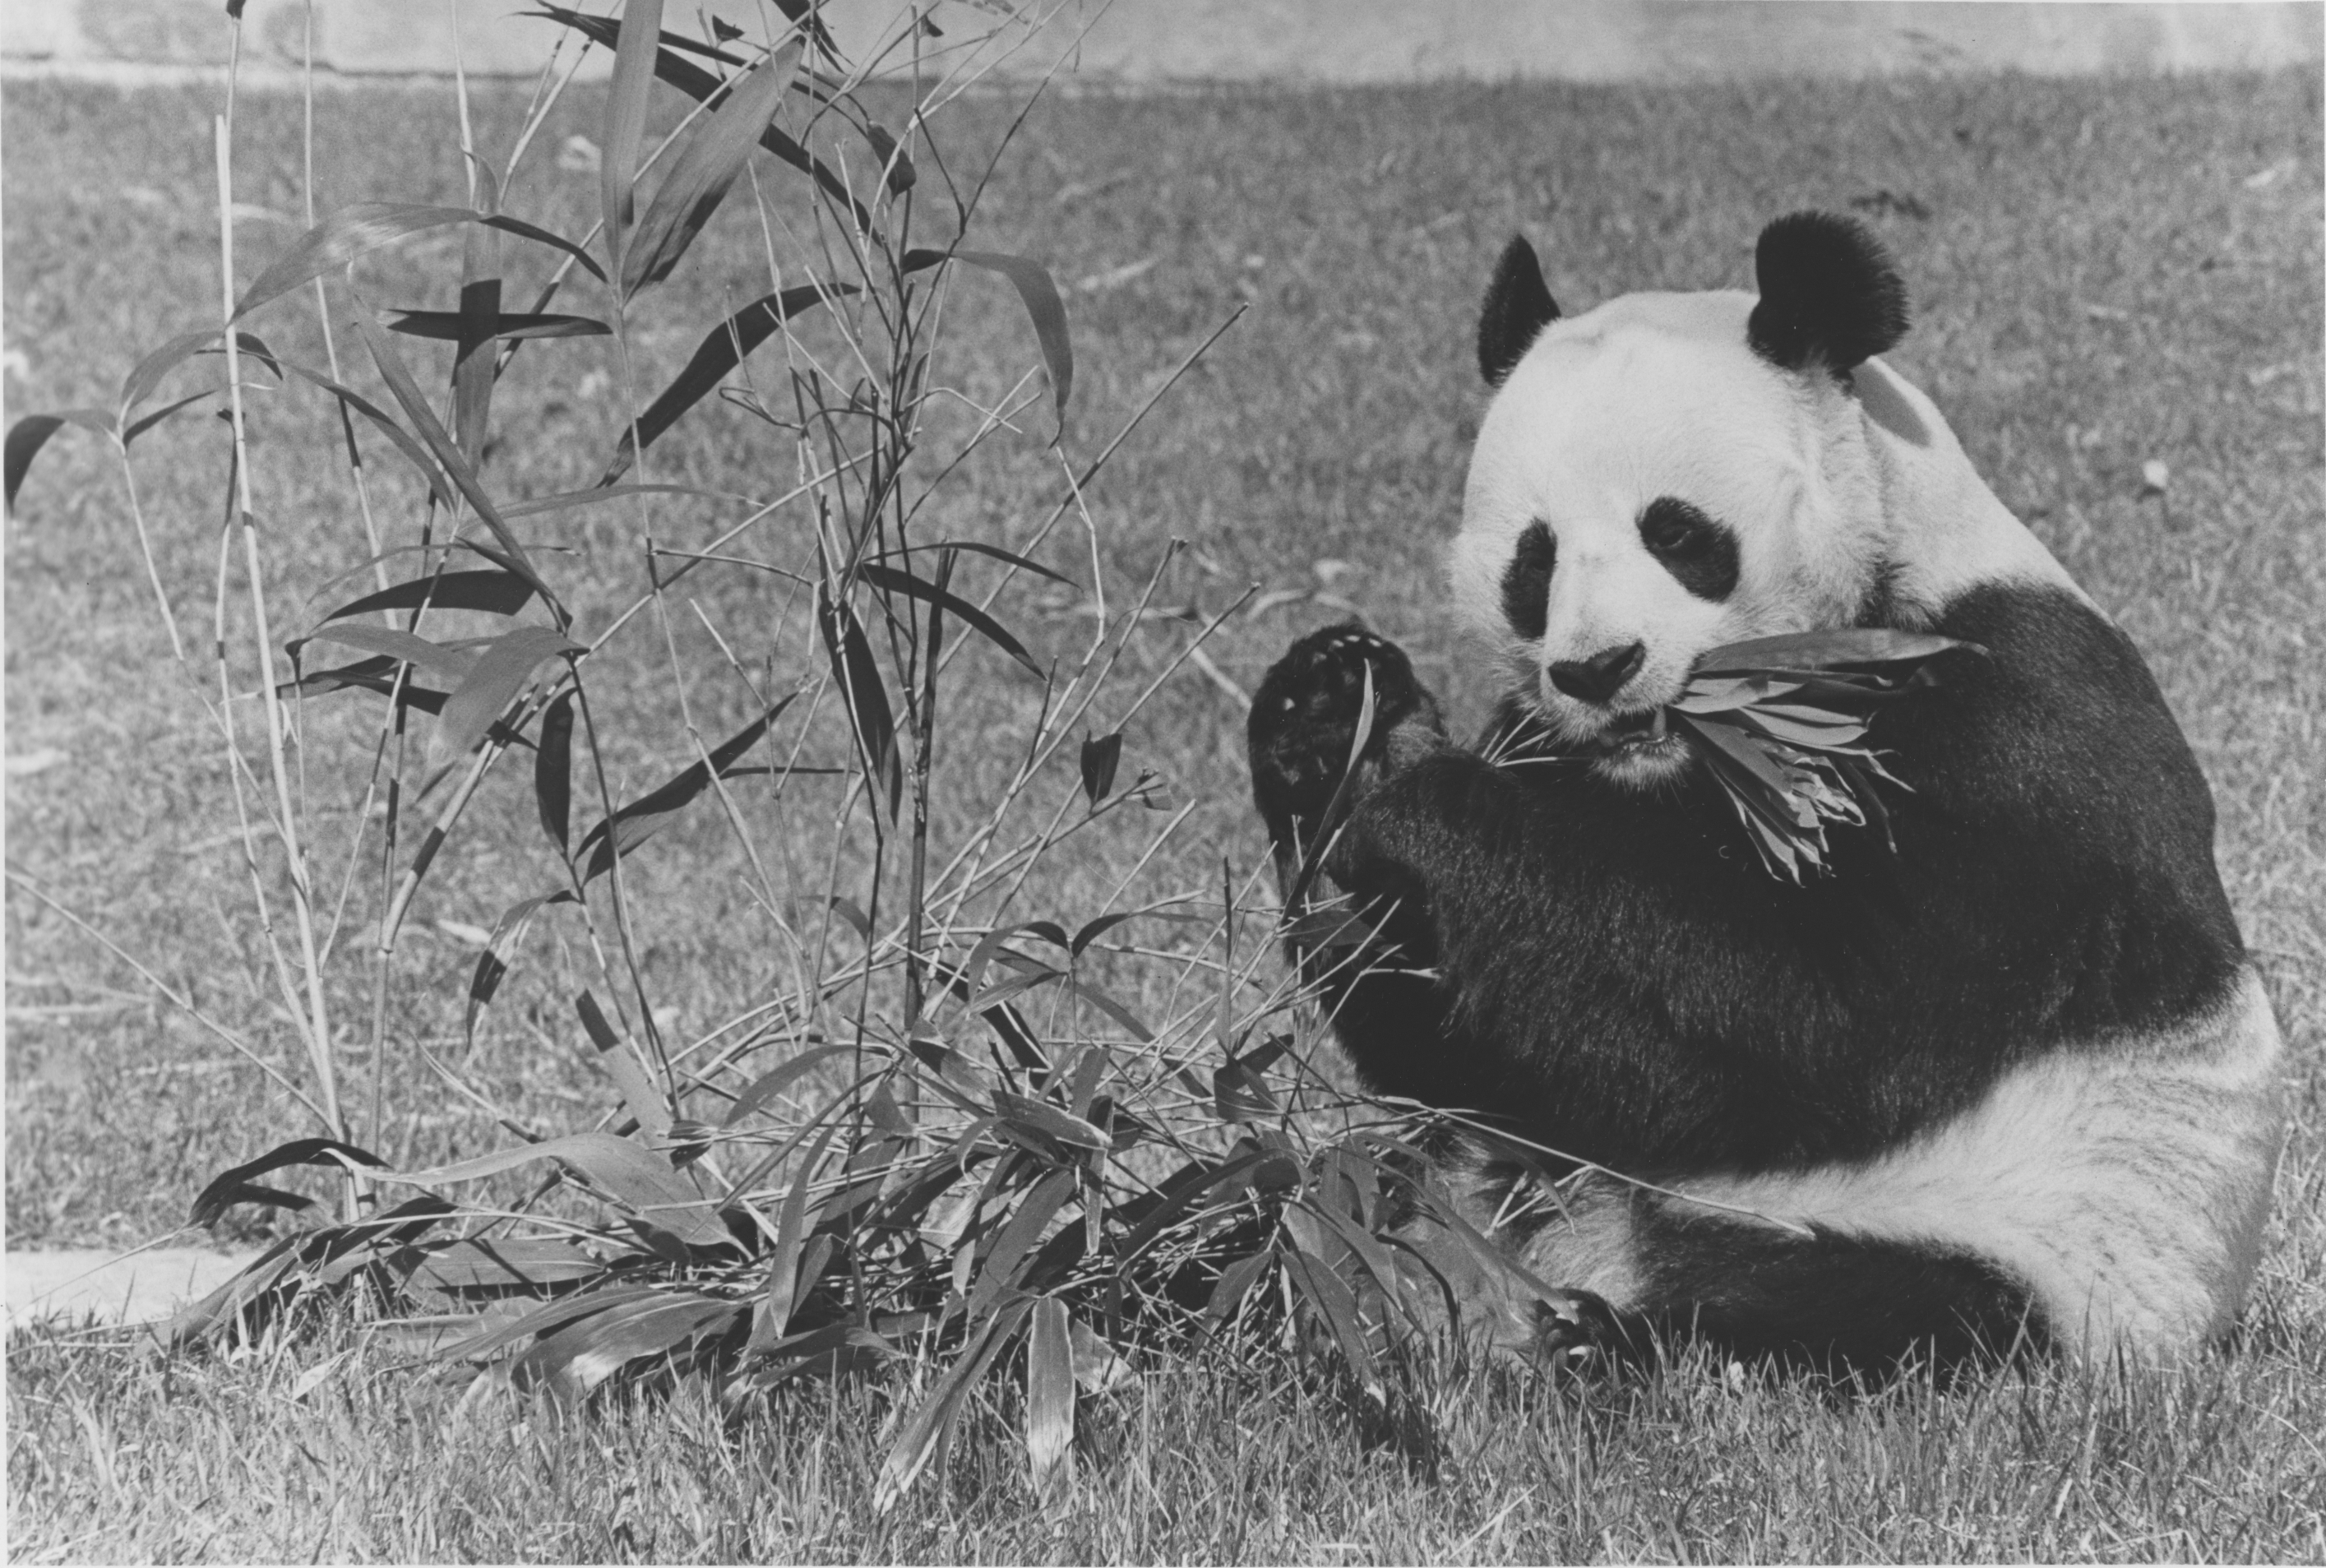 Male giant panda, Hsing-Hsing, eating bamboo at the National Zoo. Local ID: 368-RP-49-4.